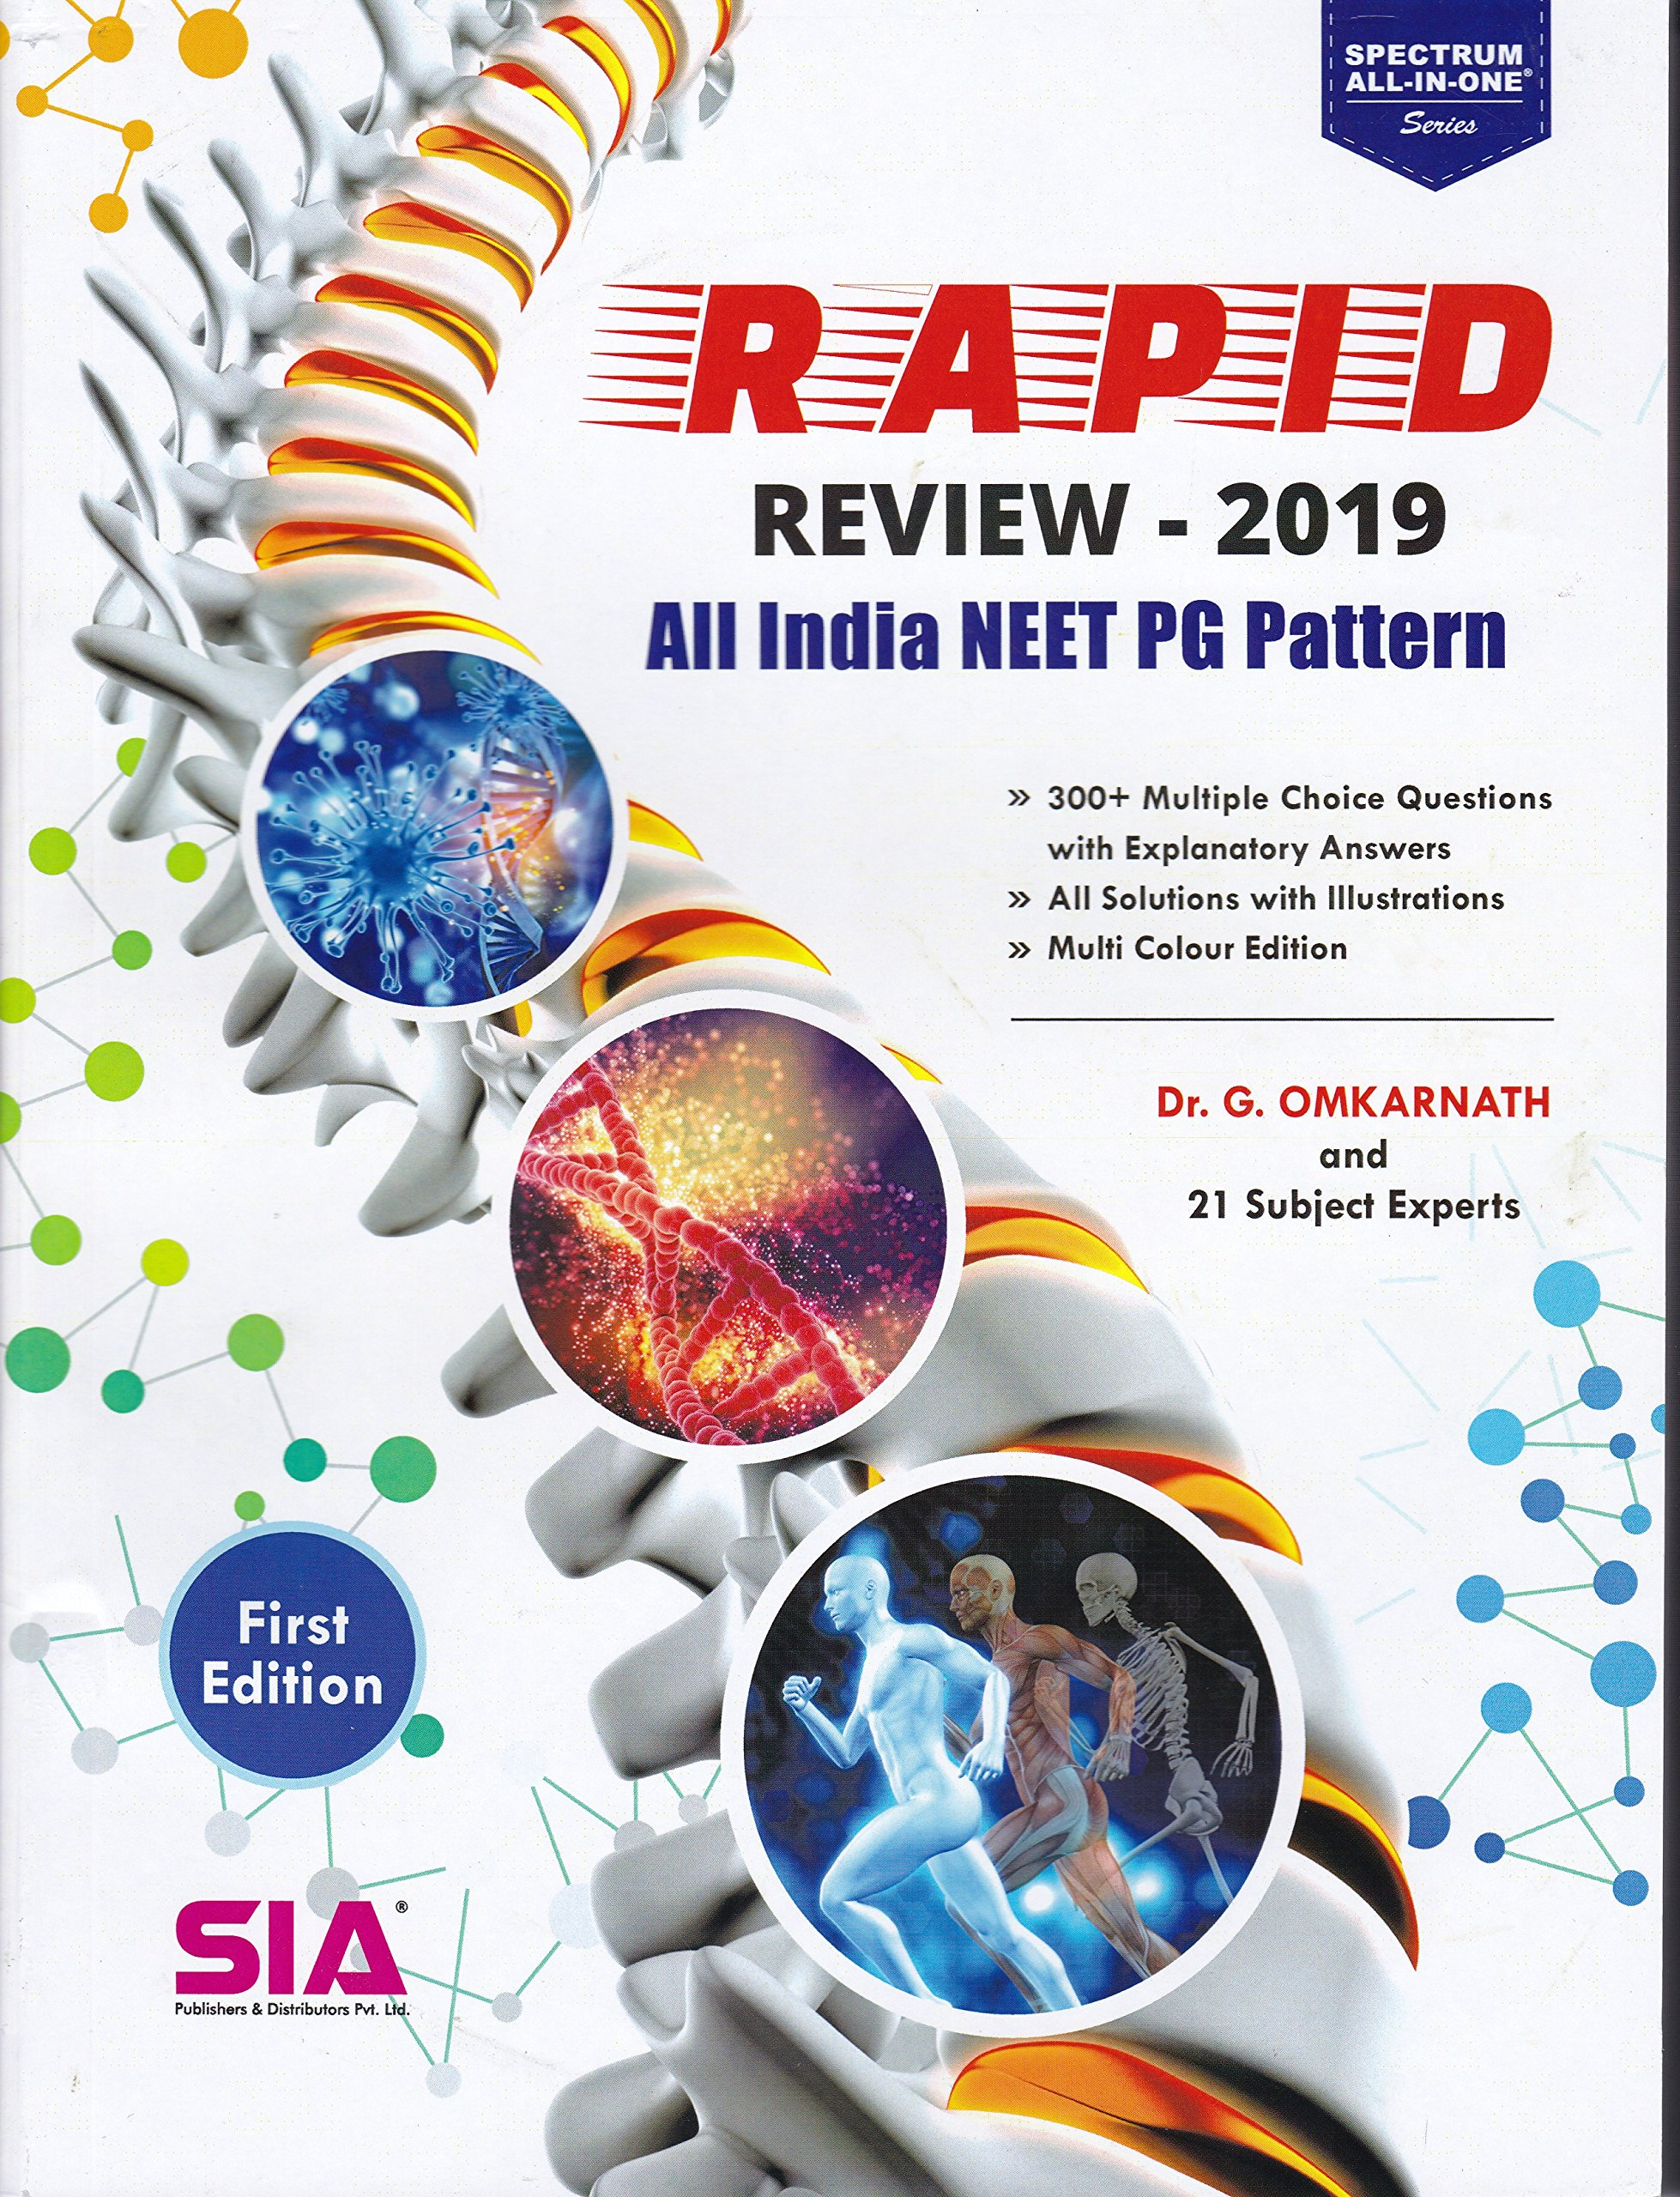 Amazon in: Buy RAPID Review - 2019 All India NEET PG Pattern